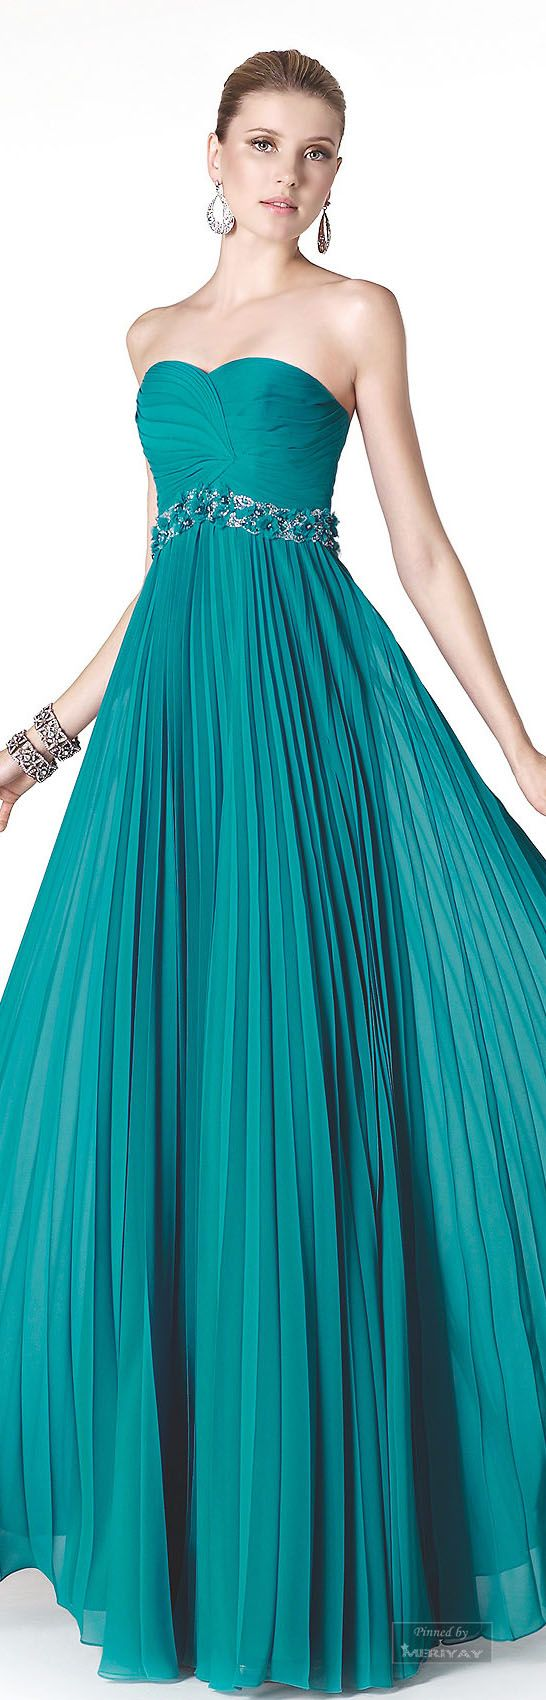 St. Patrick.2015. | Fashion | Pinterest | Saints, Gowns and Turquoise